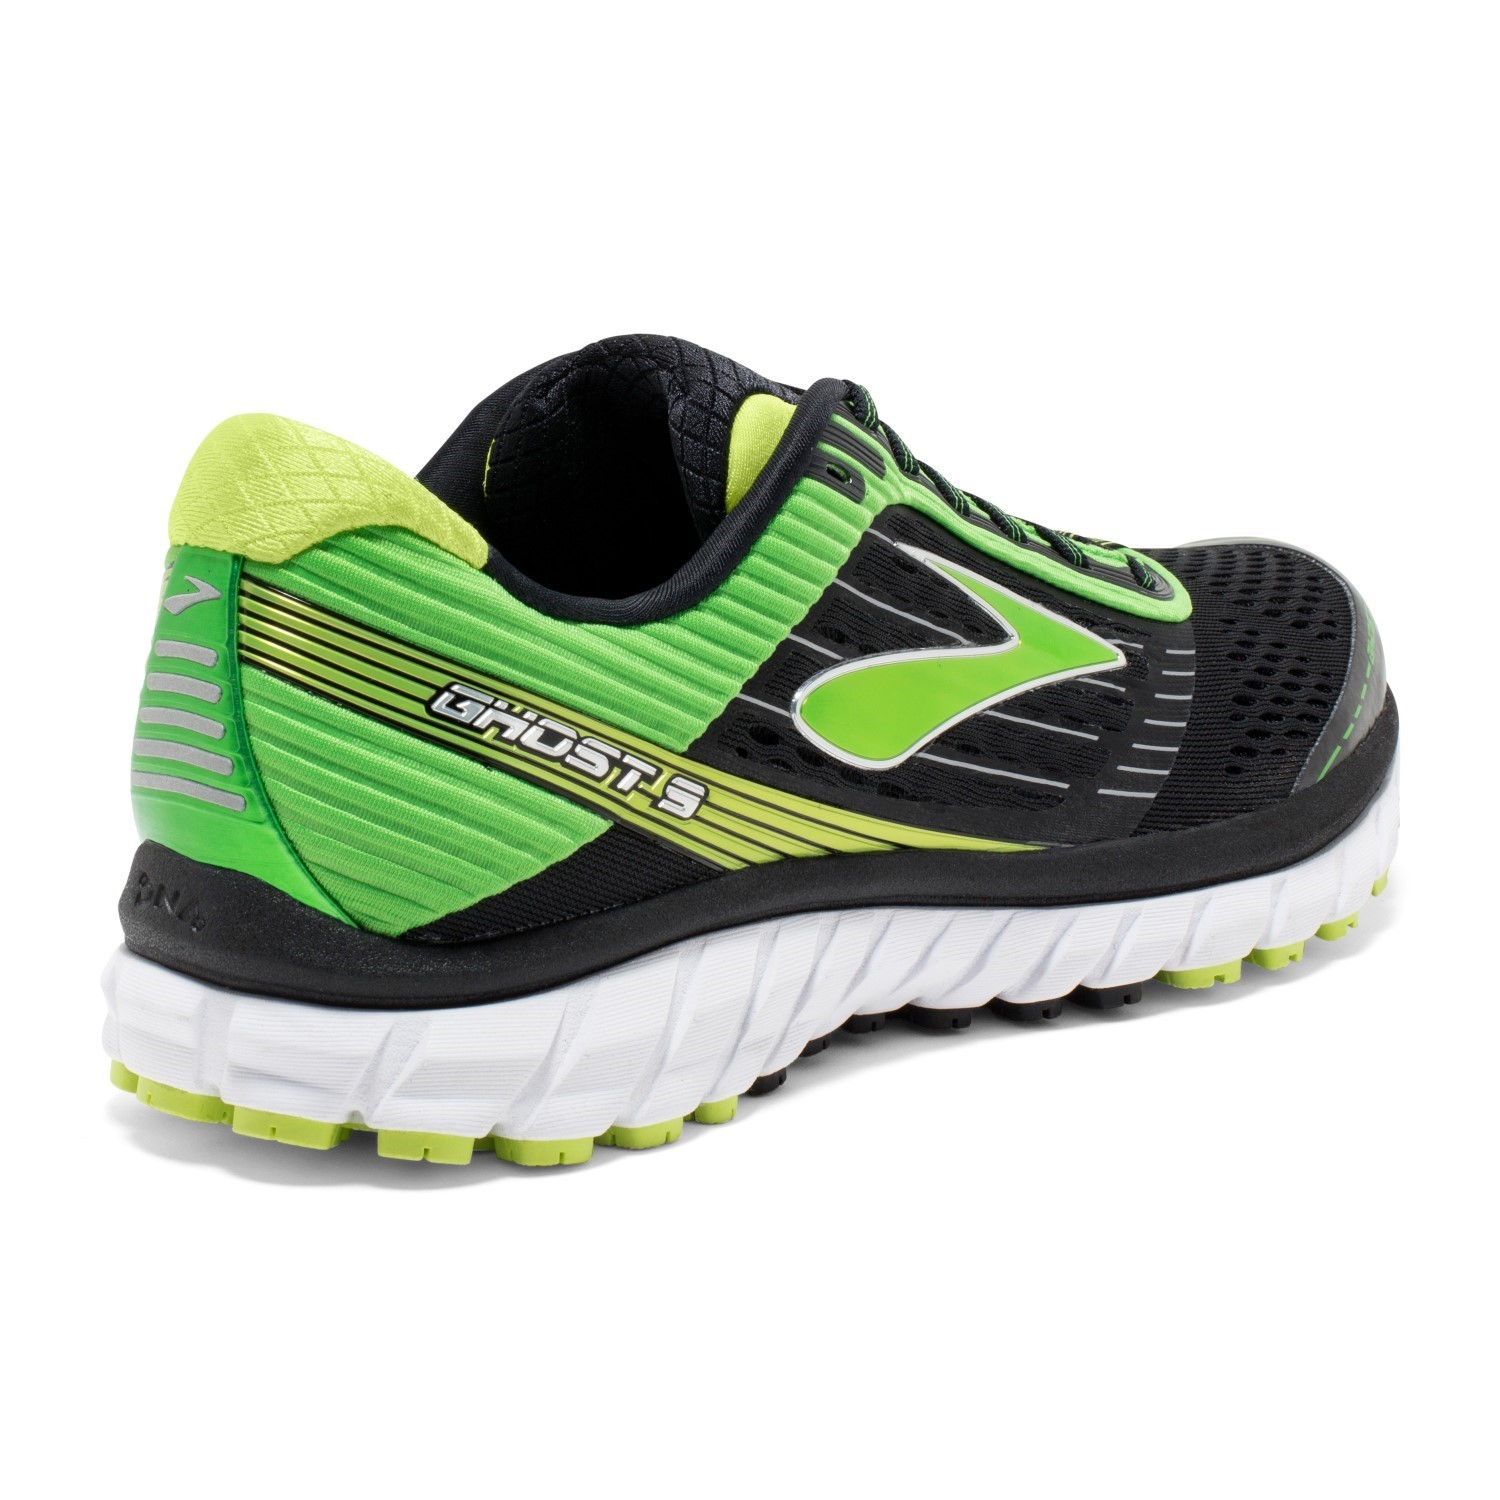 Brooks Running Shoes Australia